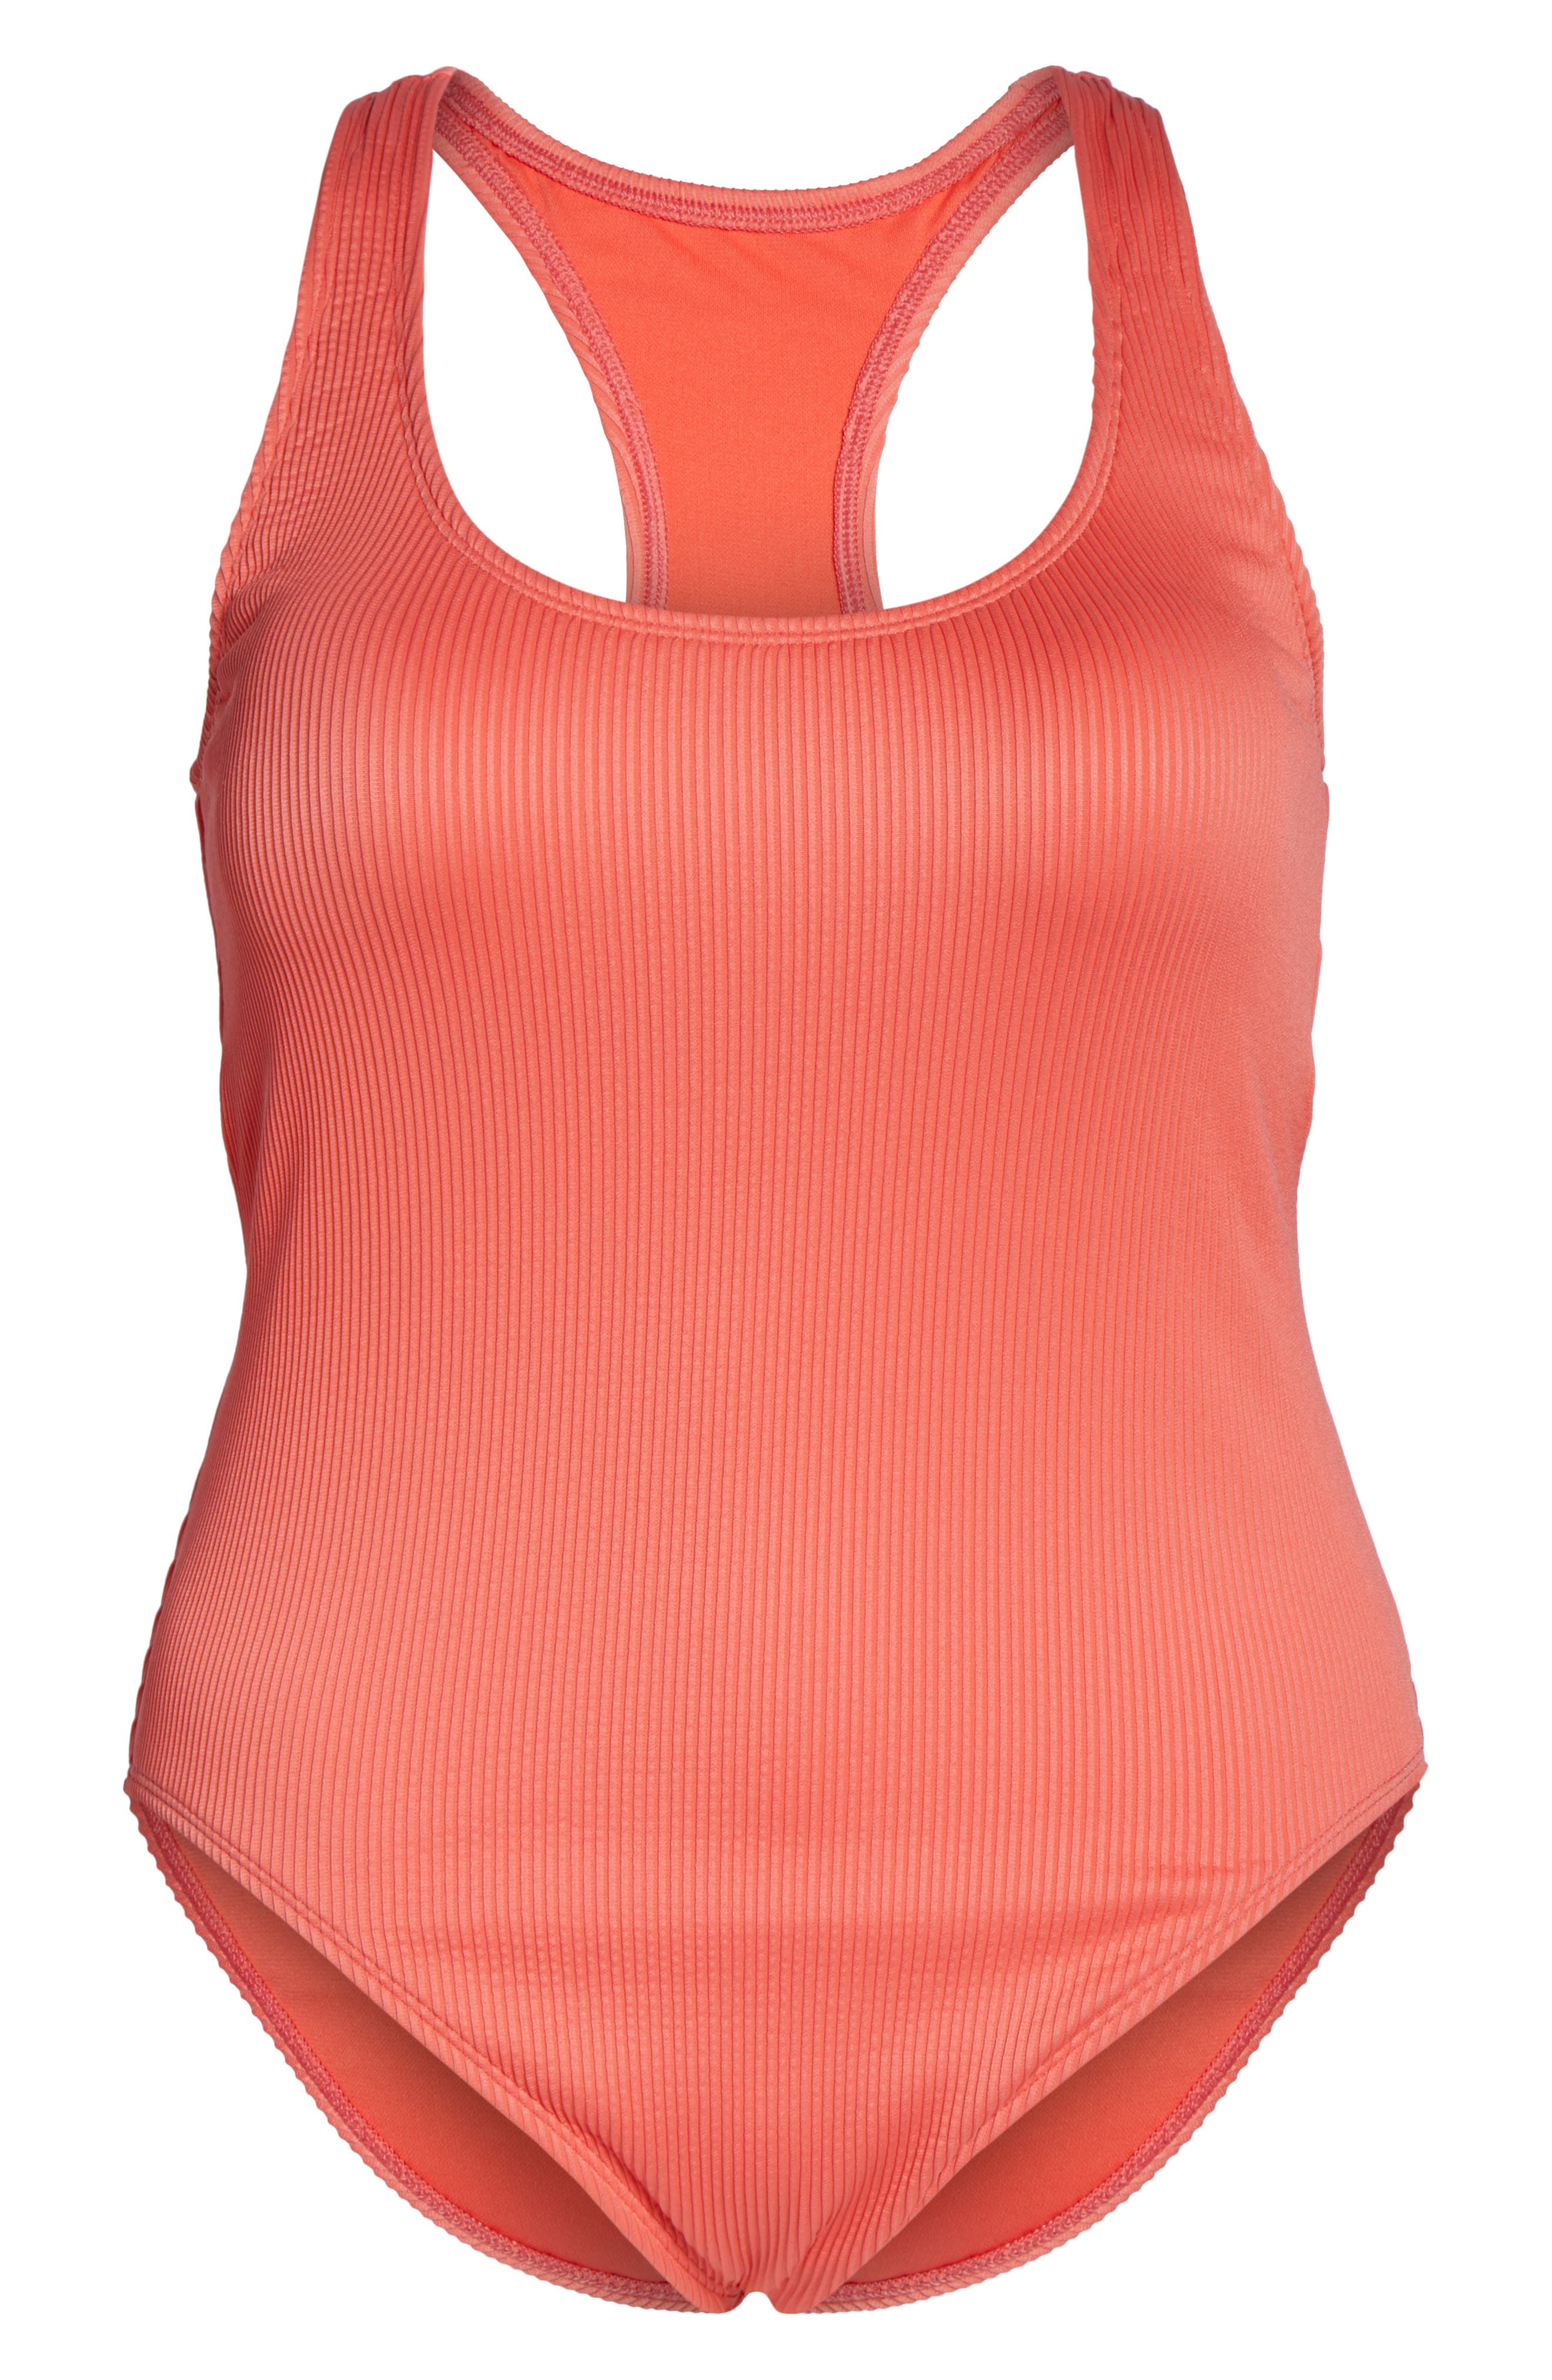 Rib-Thym One-Piece Swimsuit,                             Alternate thumbnail 6, color,                             950